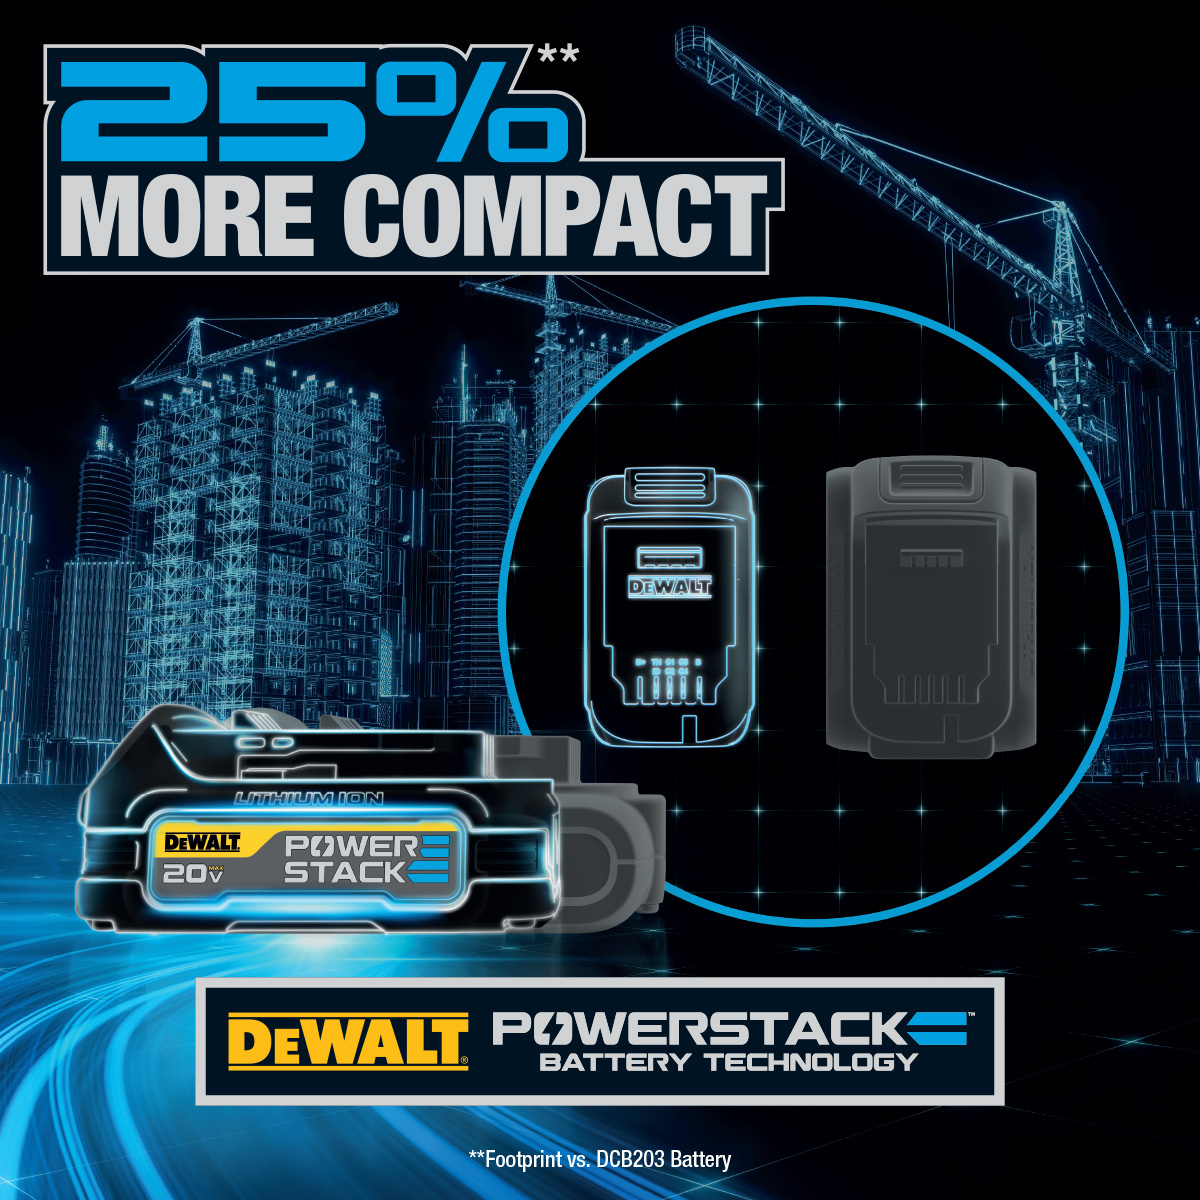 25% More Compact**